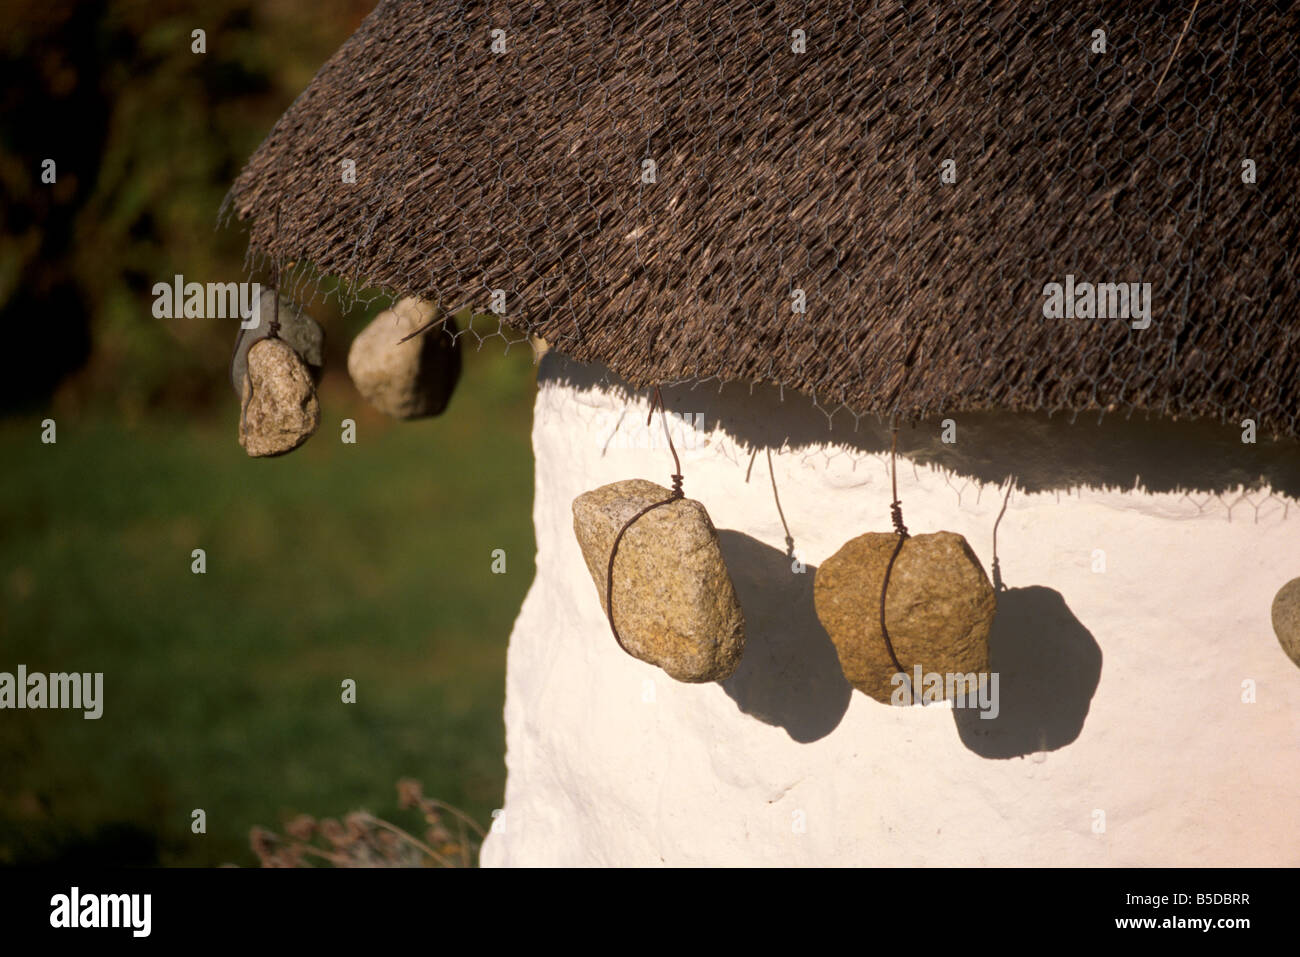 Thatched house with tied stones, Luib, Isle of Skye, Inner Hebrides, Scotland, Europe - Stock Image